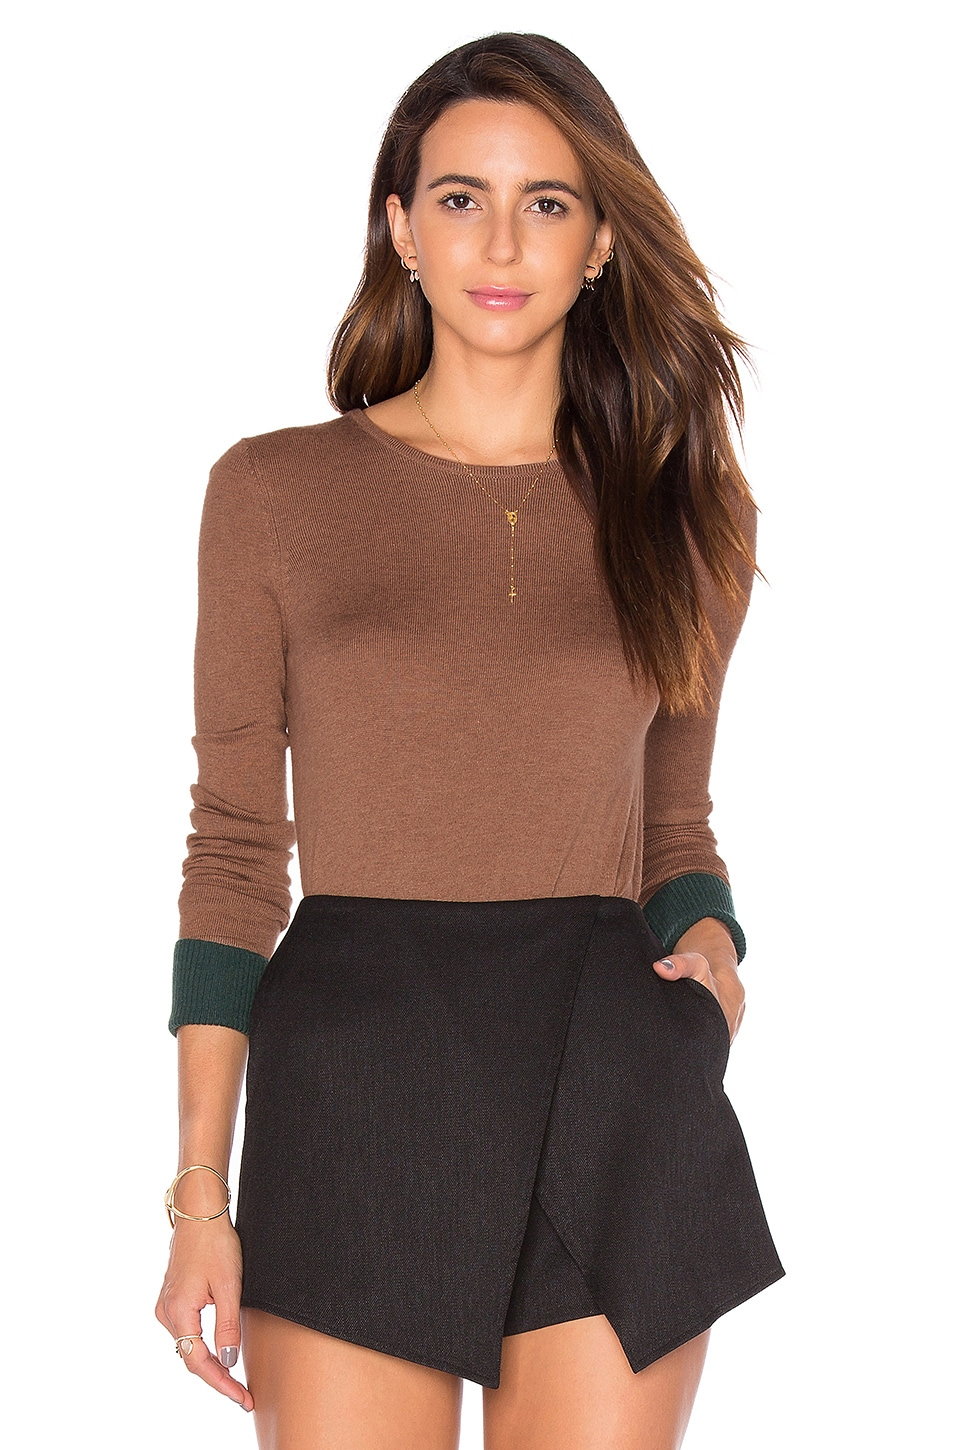 Bailey 44 Highly Selective Sweater in Camel & Evergreen